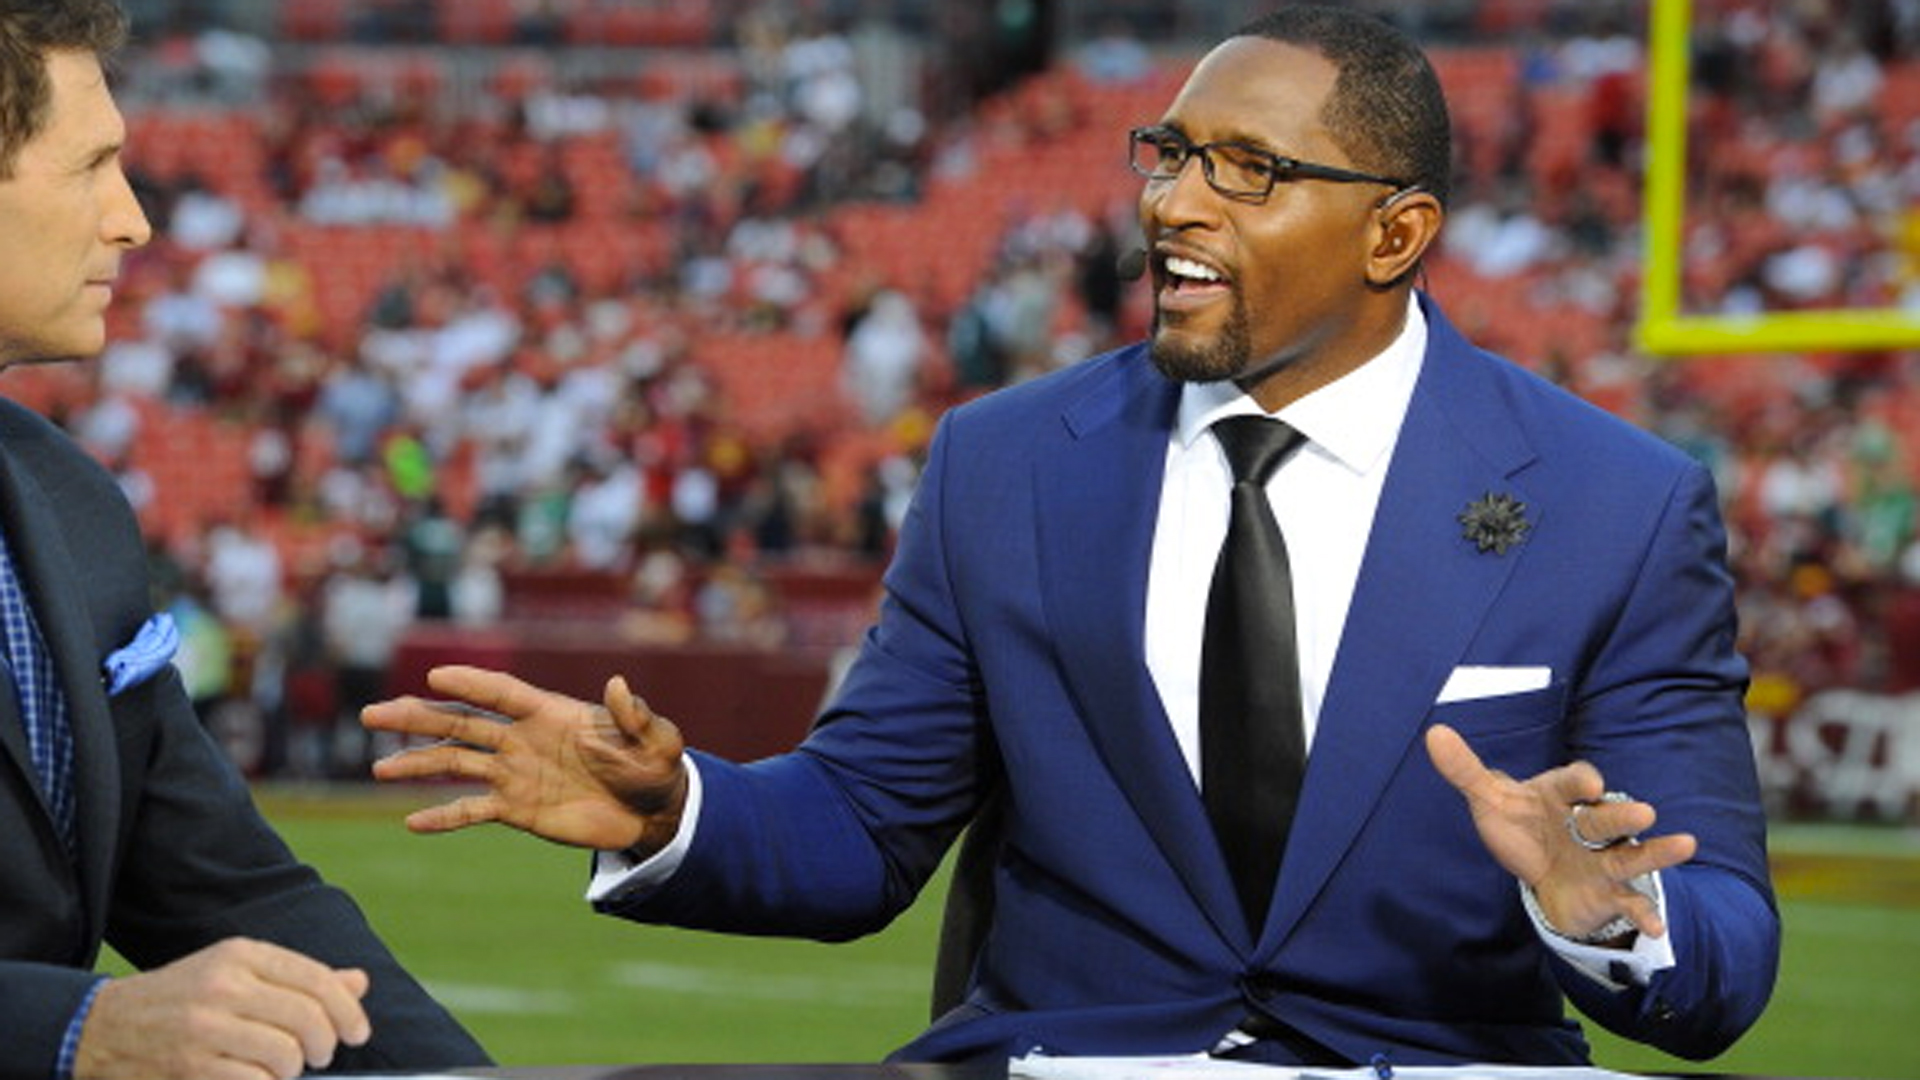 ray-lewis-espn-042915-getty-ftr